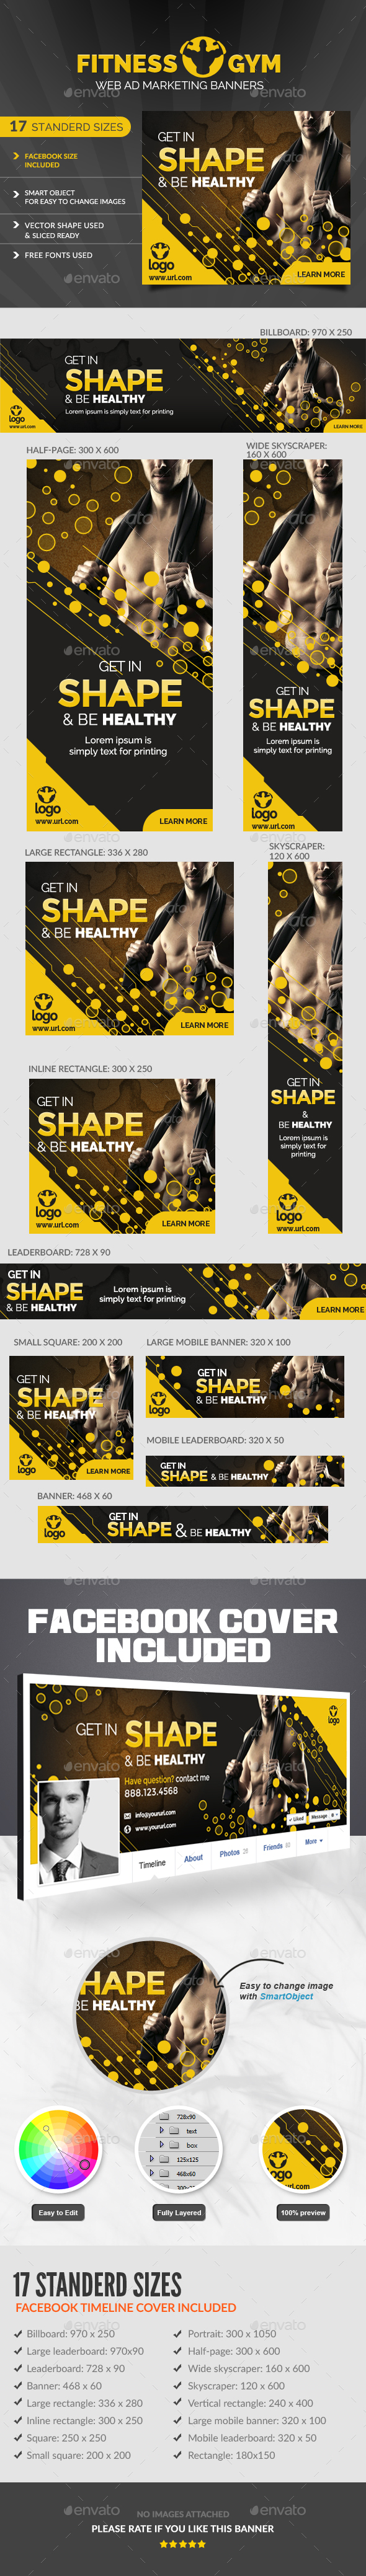 Fitness Ad Banners  - Banners & Ads Web Elements